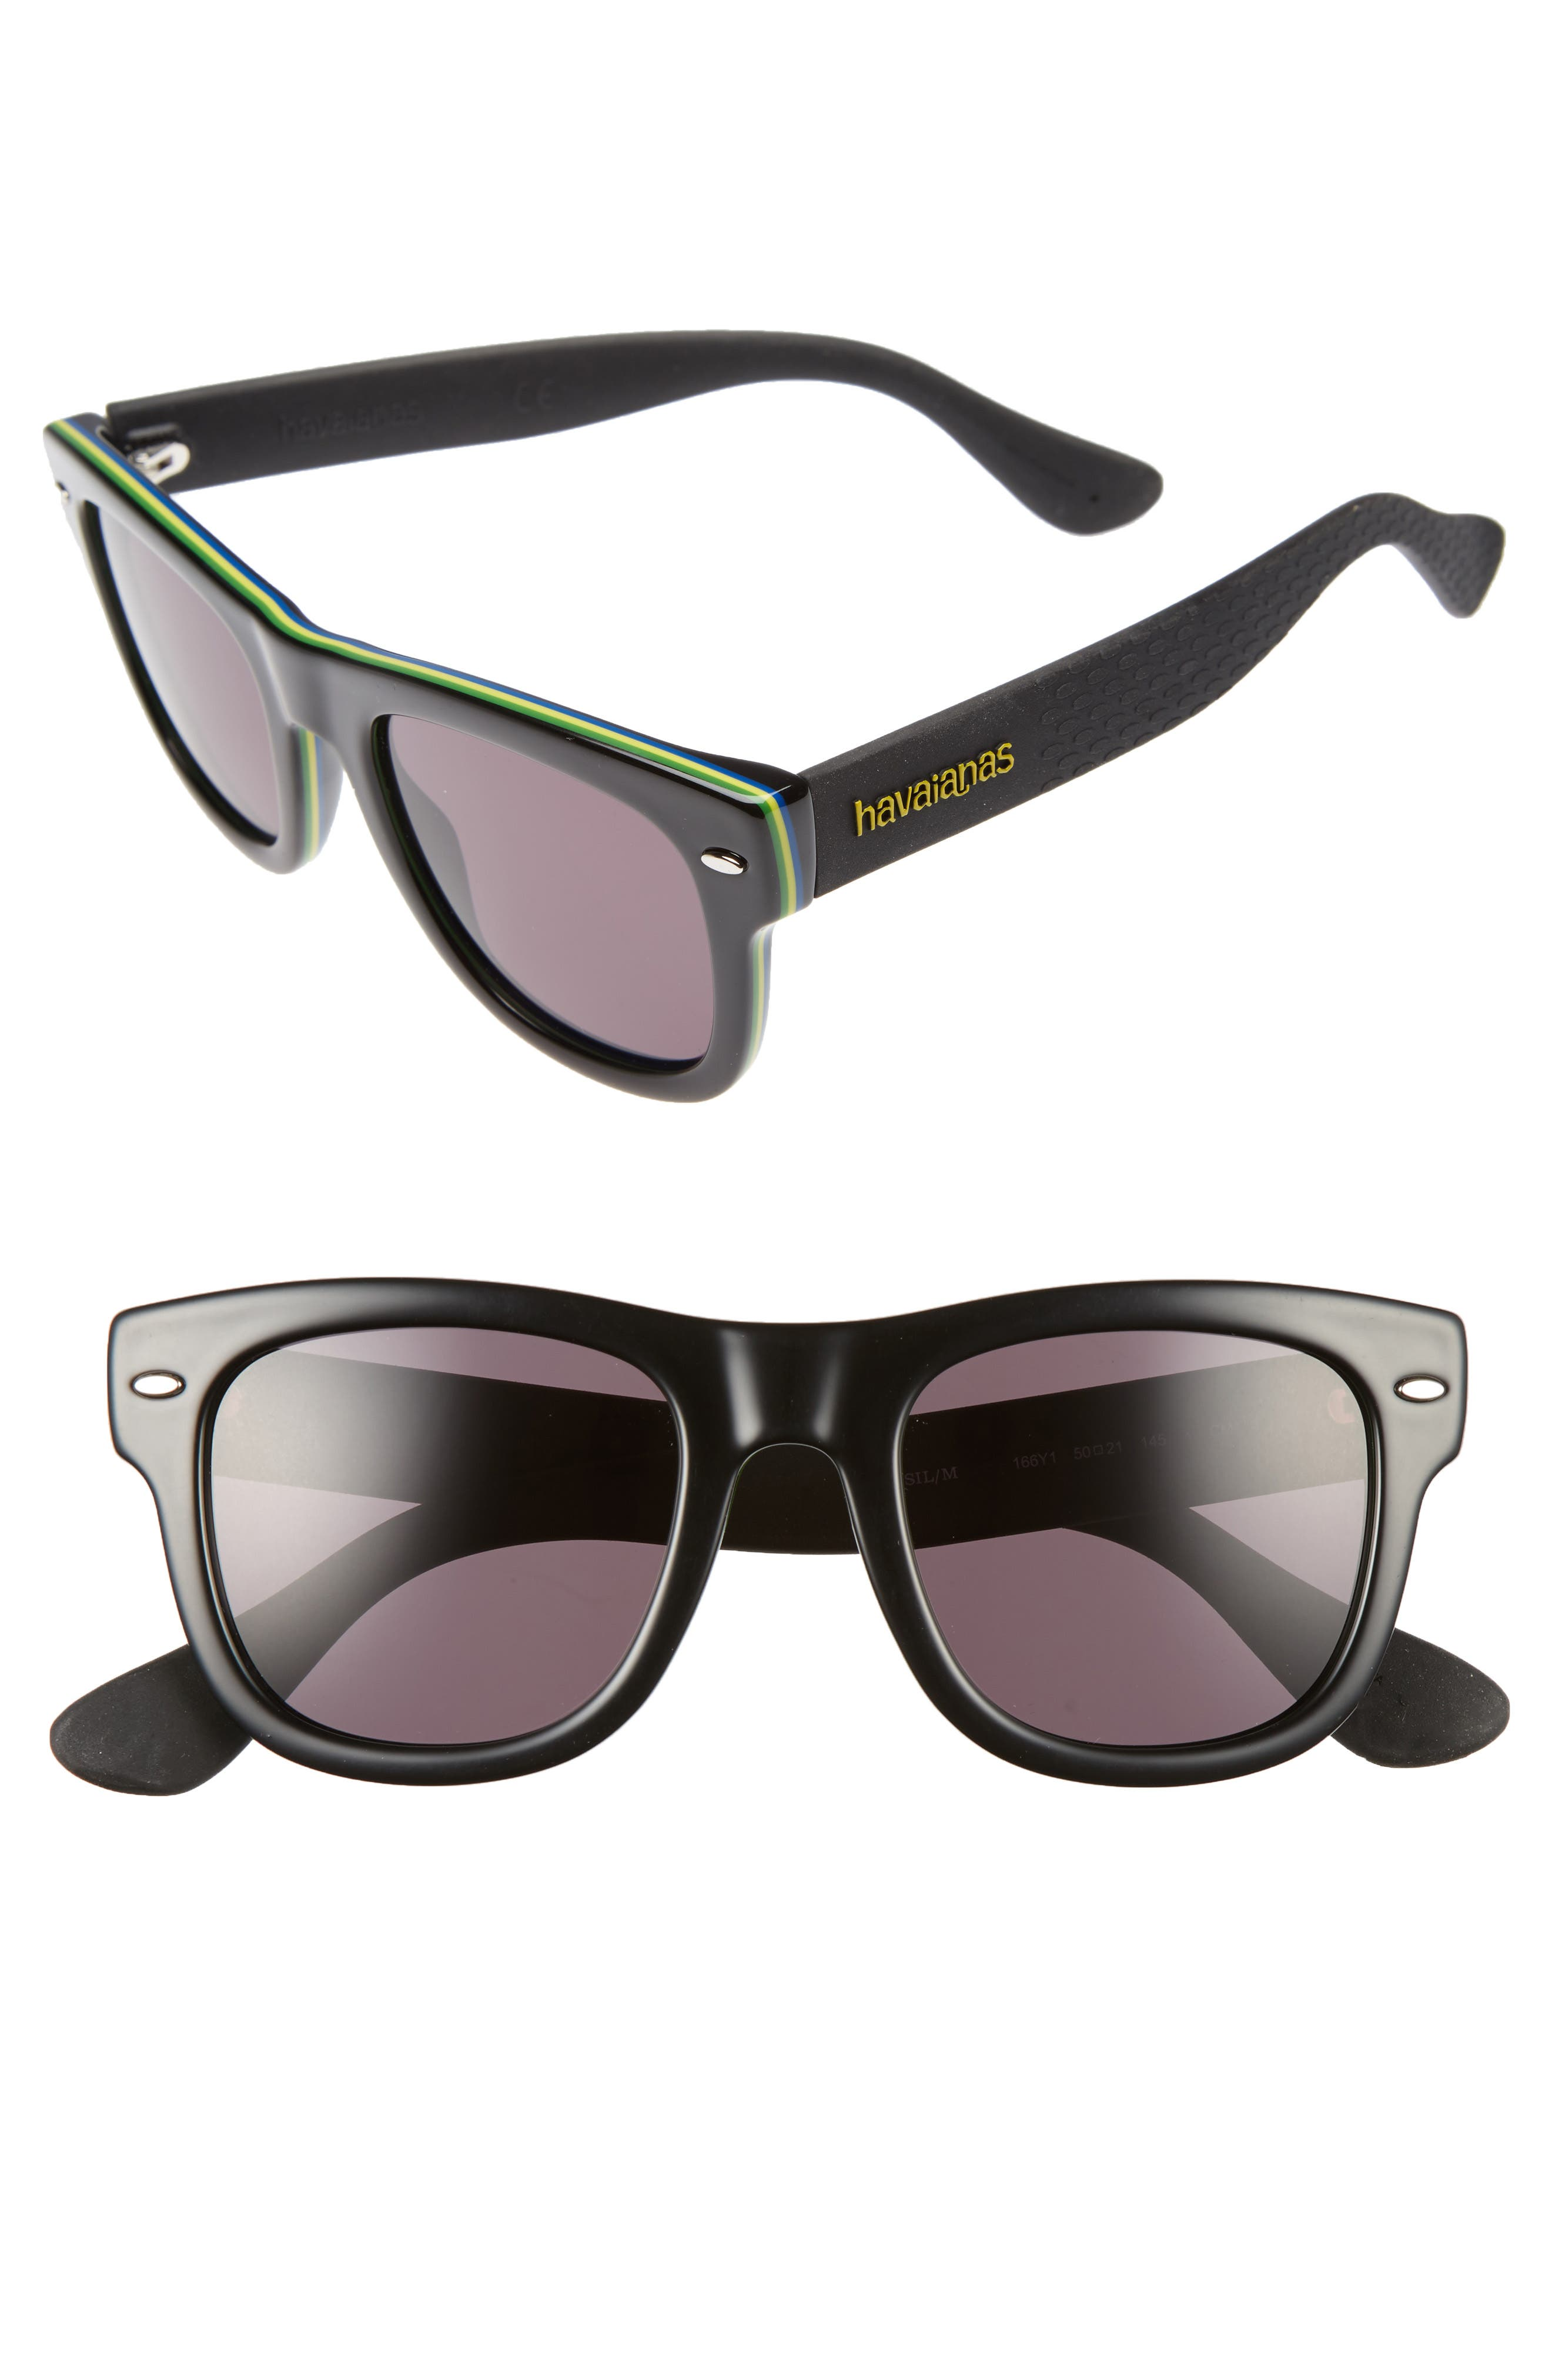 Havaianas Brasil 50mm Square Sunglasses